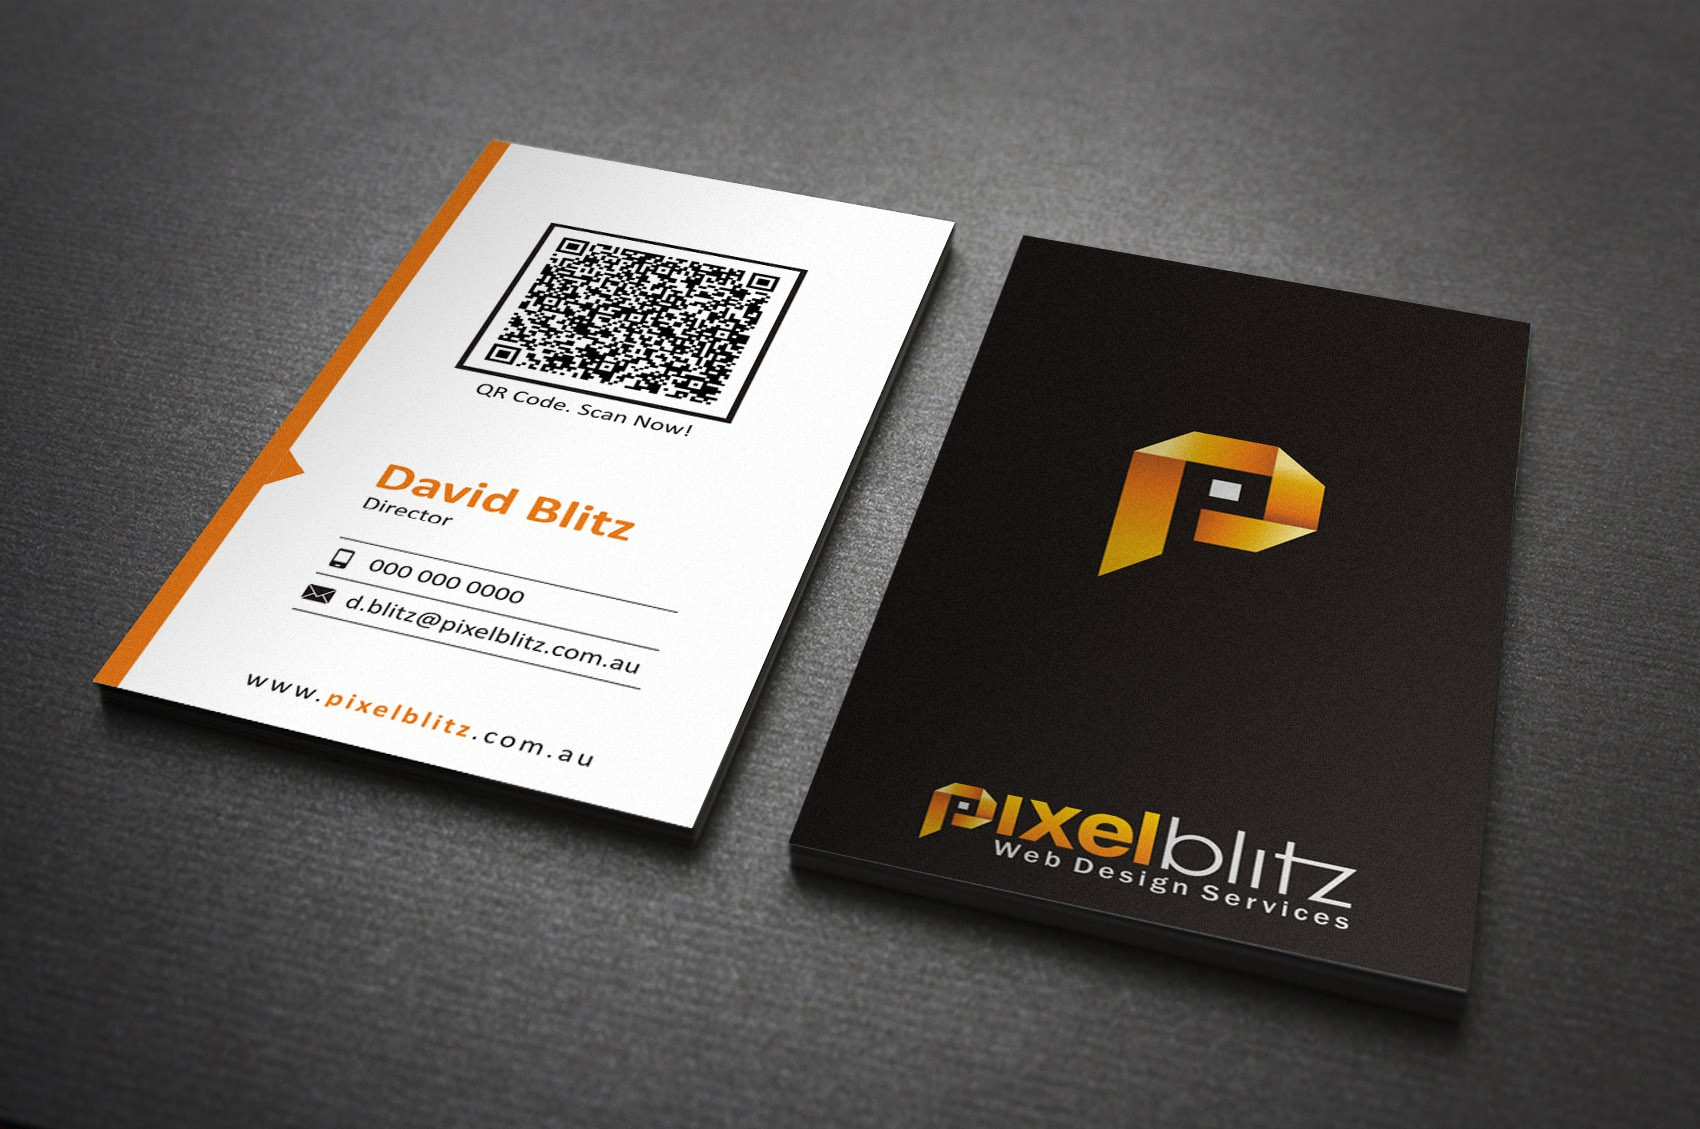 Pixel Blitz need a stunning, stand-out logo + business card.